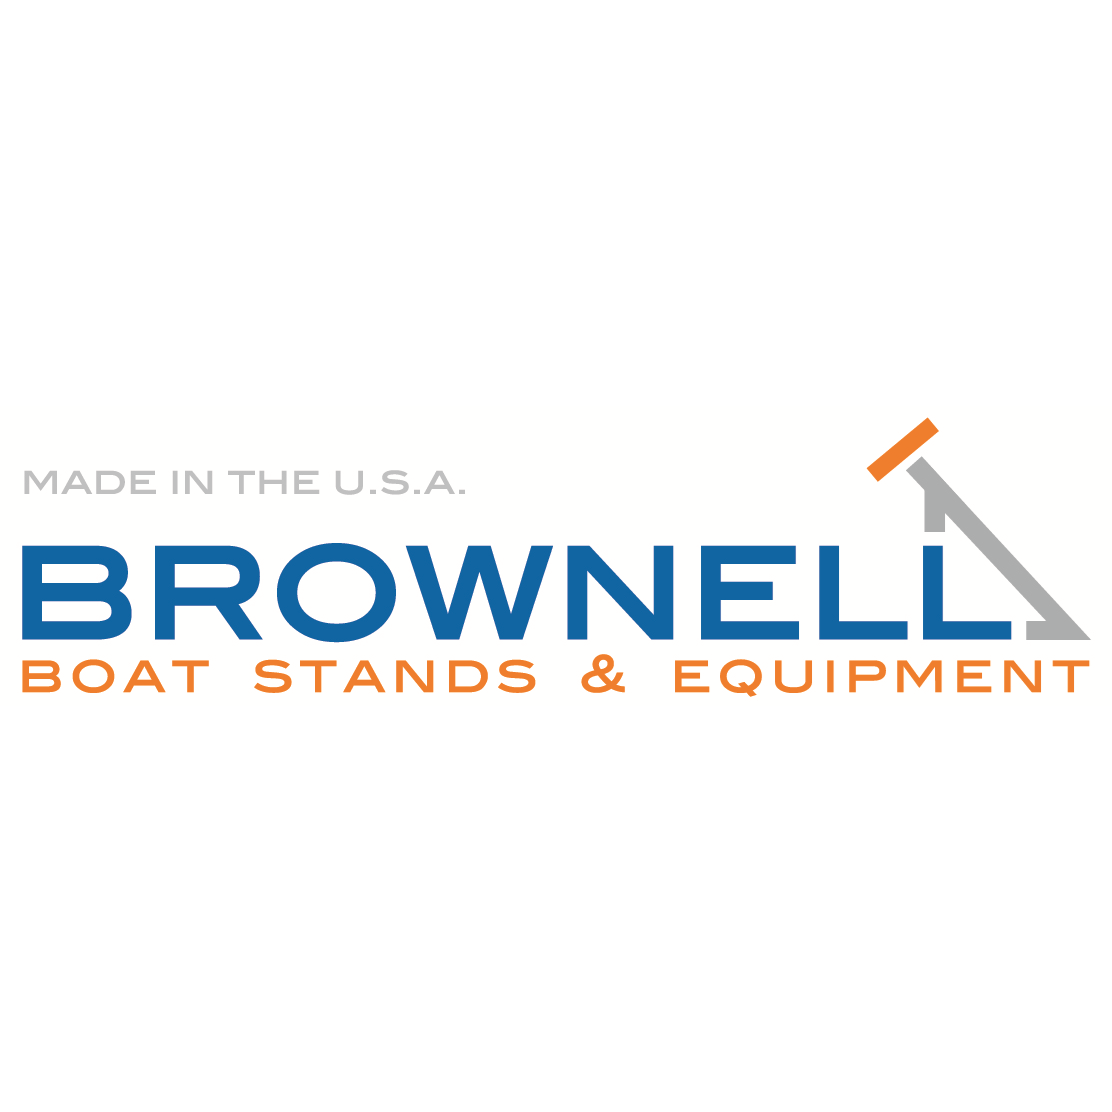 Brownell Boat Stands